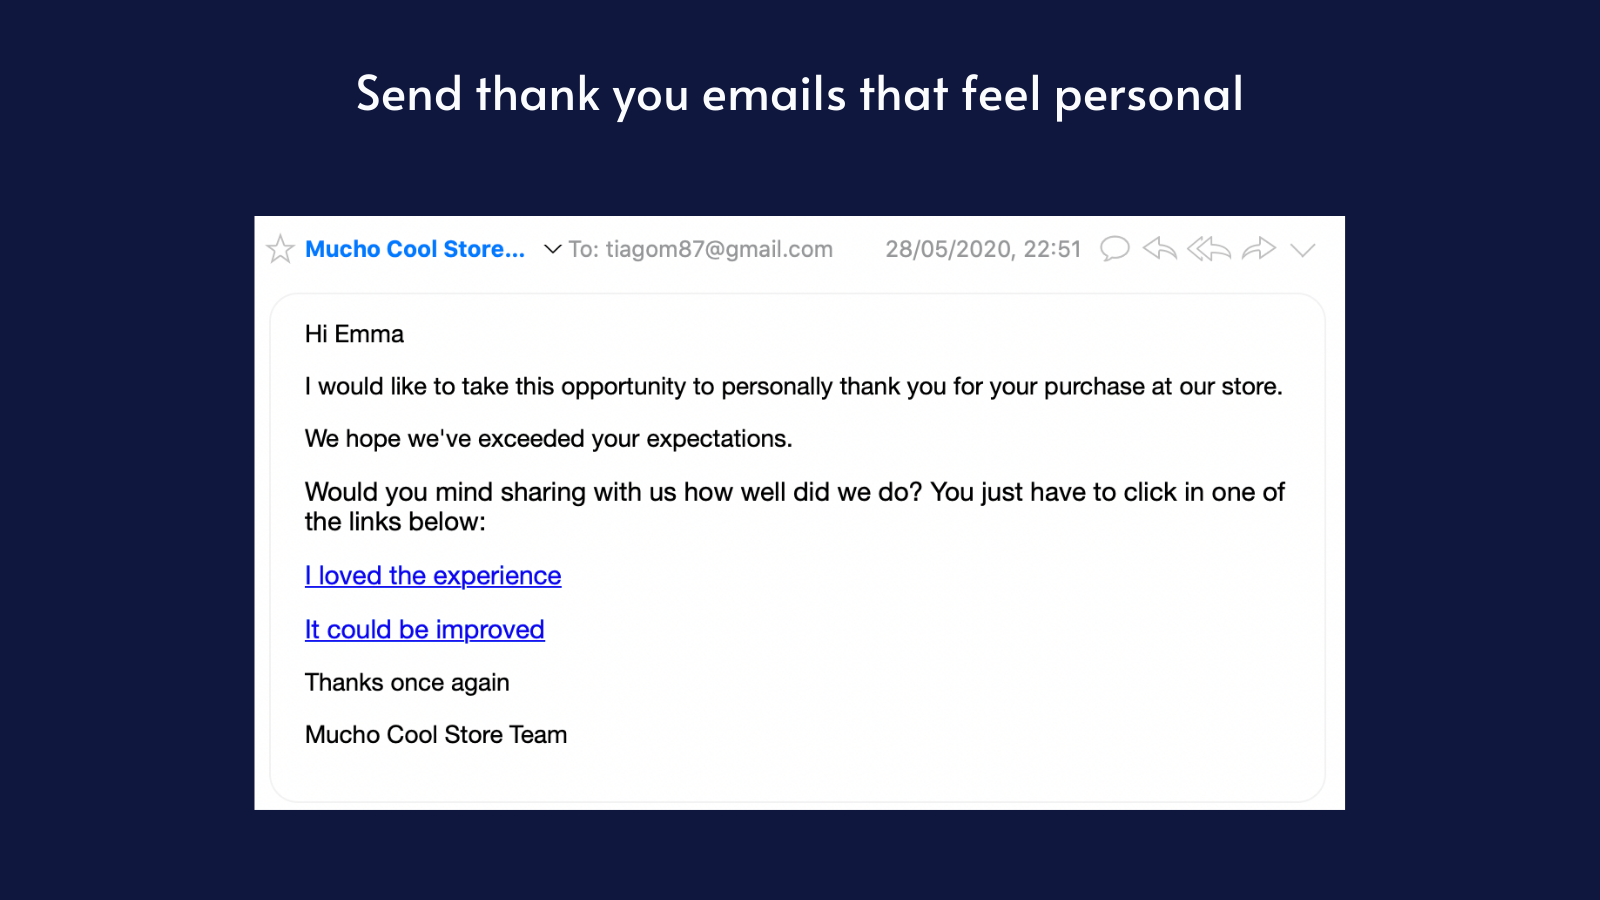 Send thank you emails that feel personal